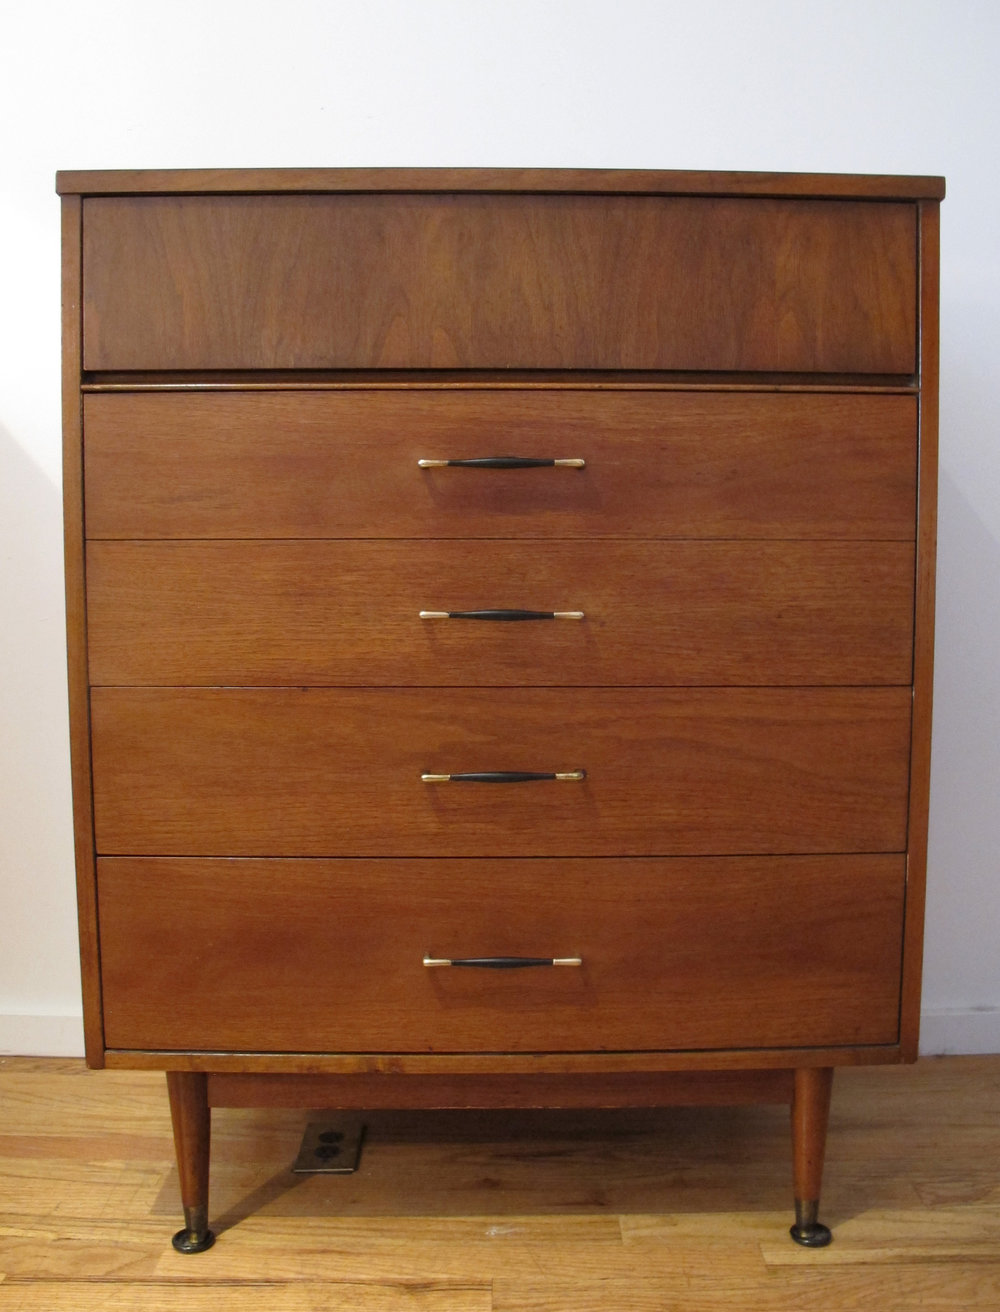 MID CENTURY MODERN FOUR DRAWER TALL DRESSER